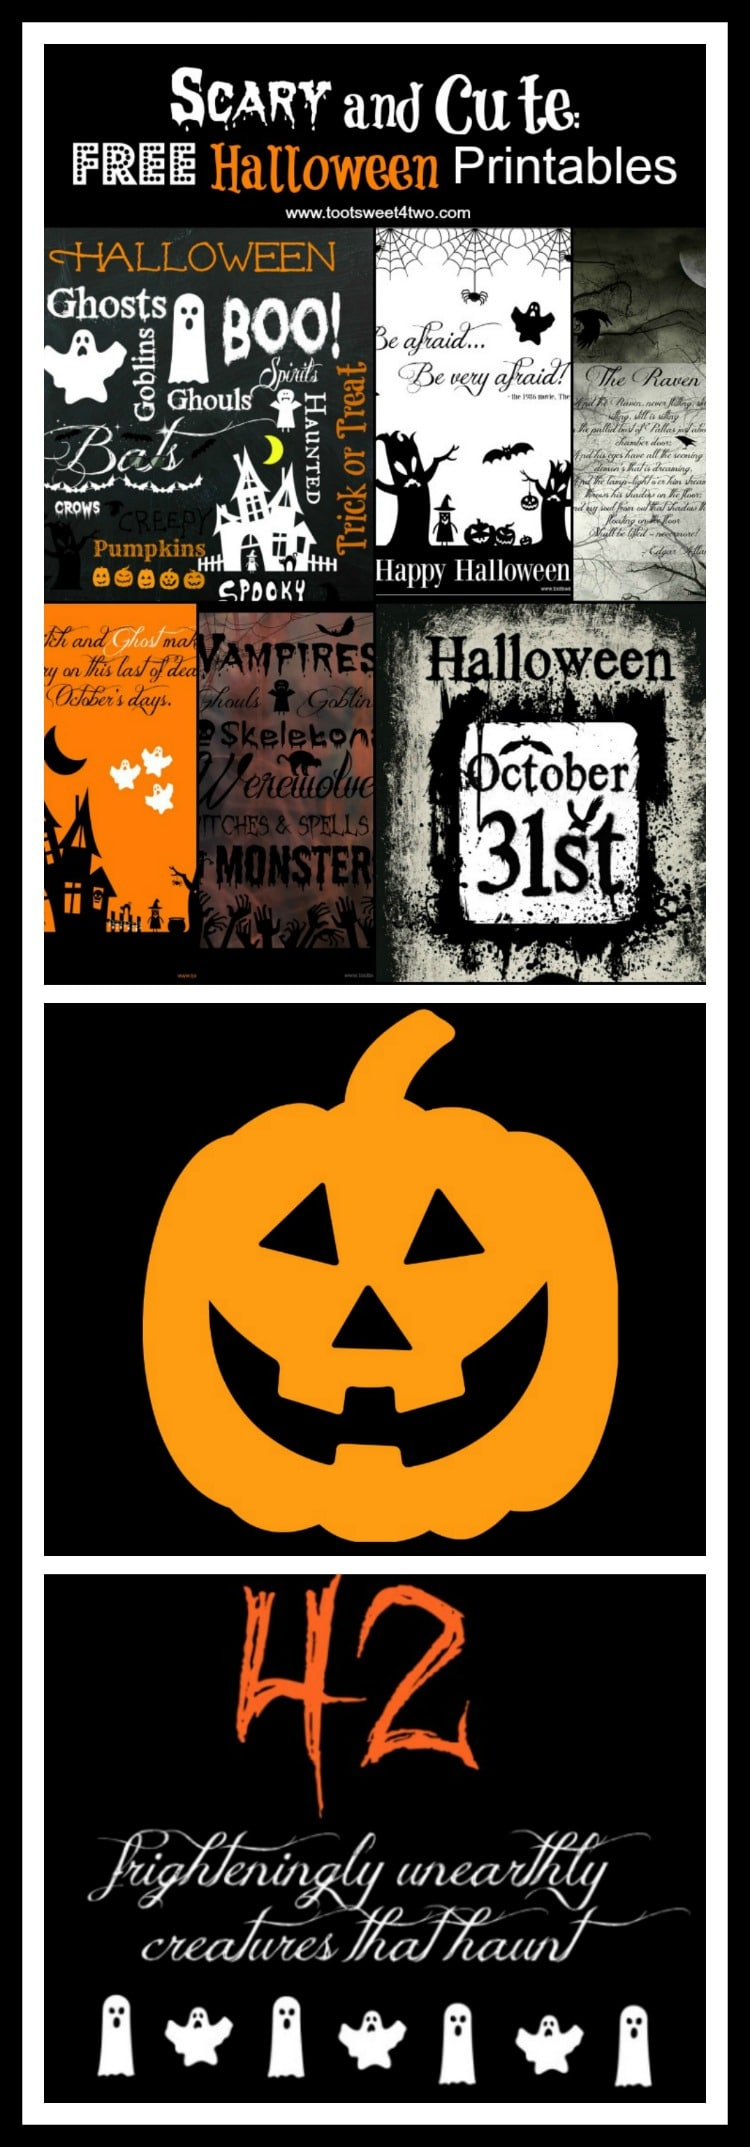 Scary and Cute Printables Pinterest